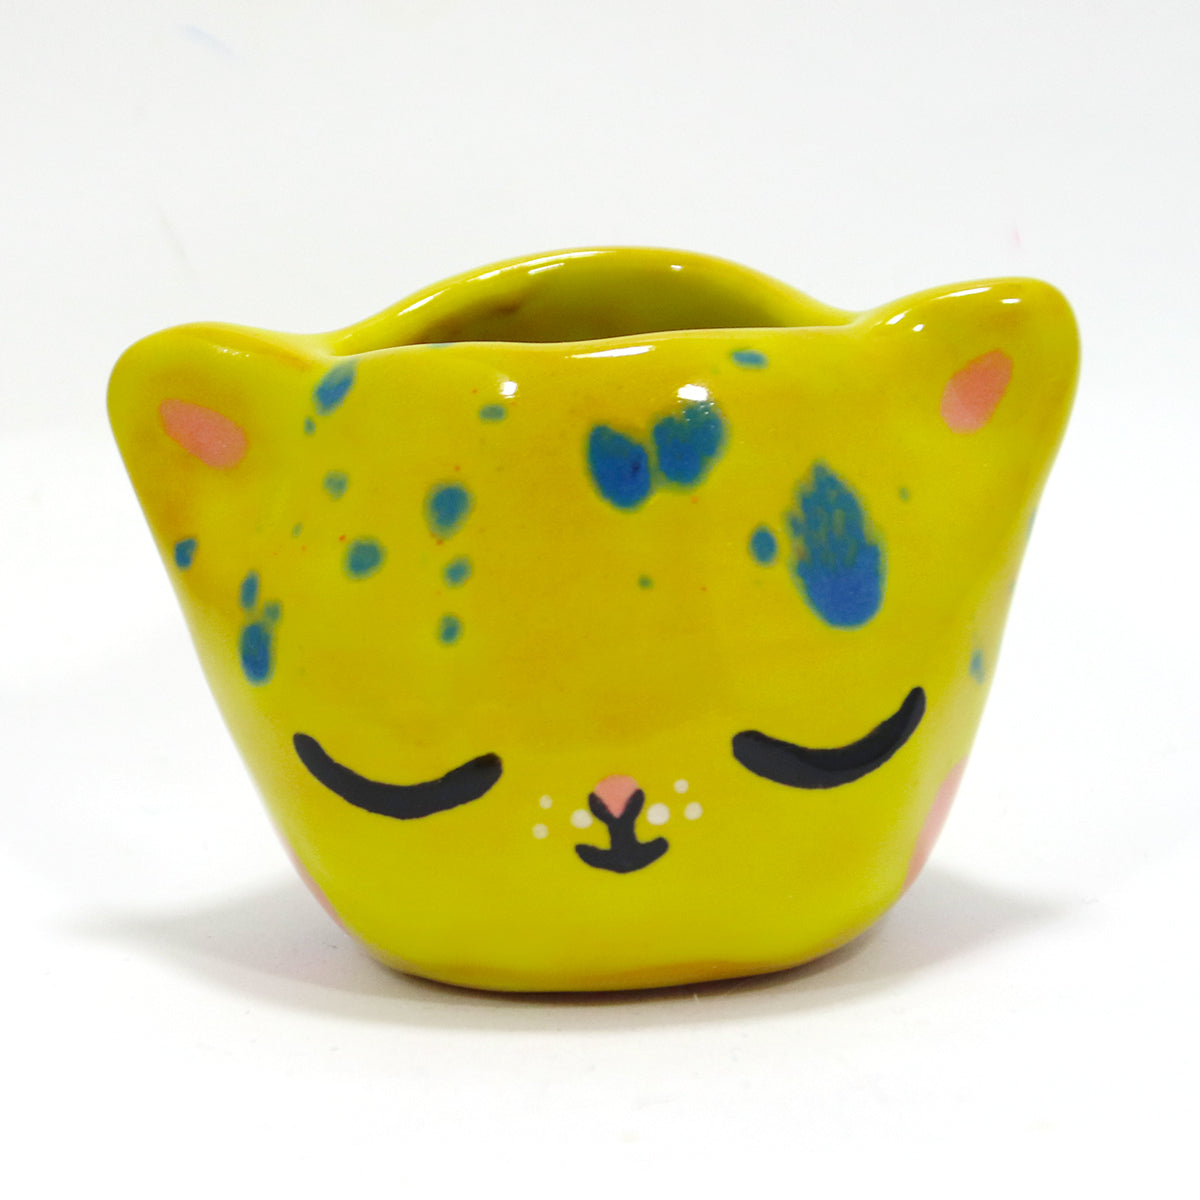 Ceramic Kitty Planter #1038 - M